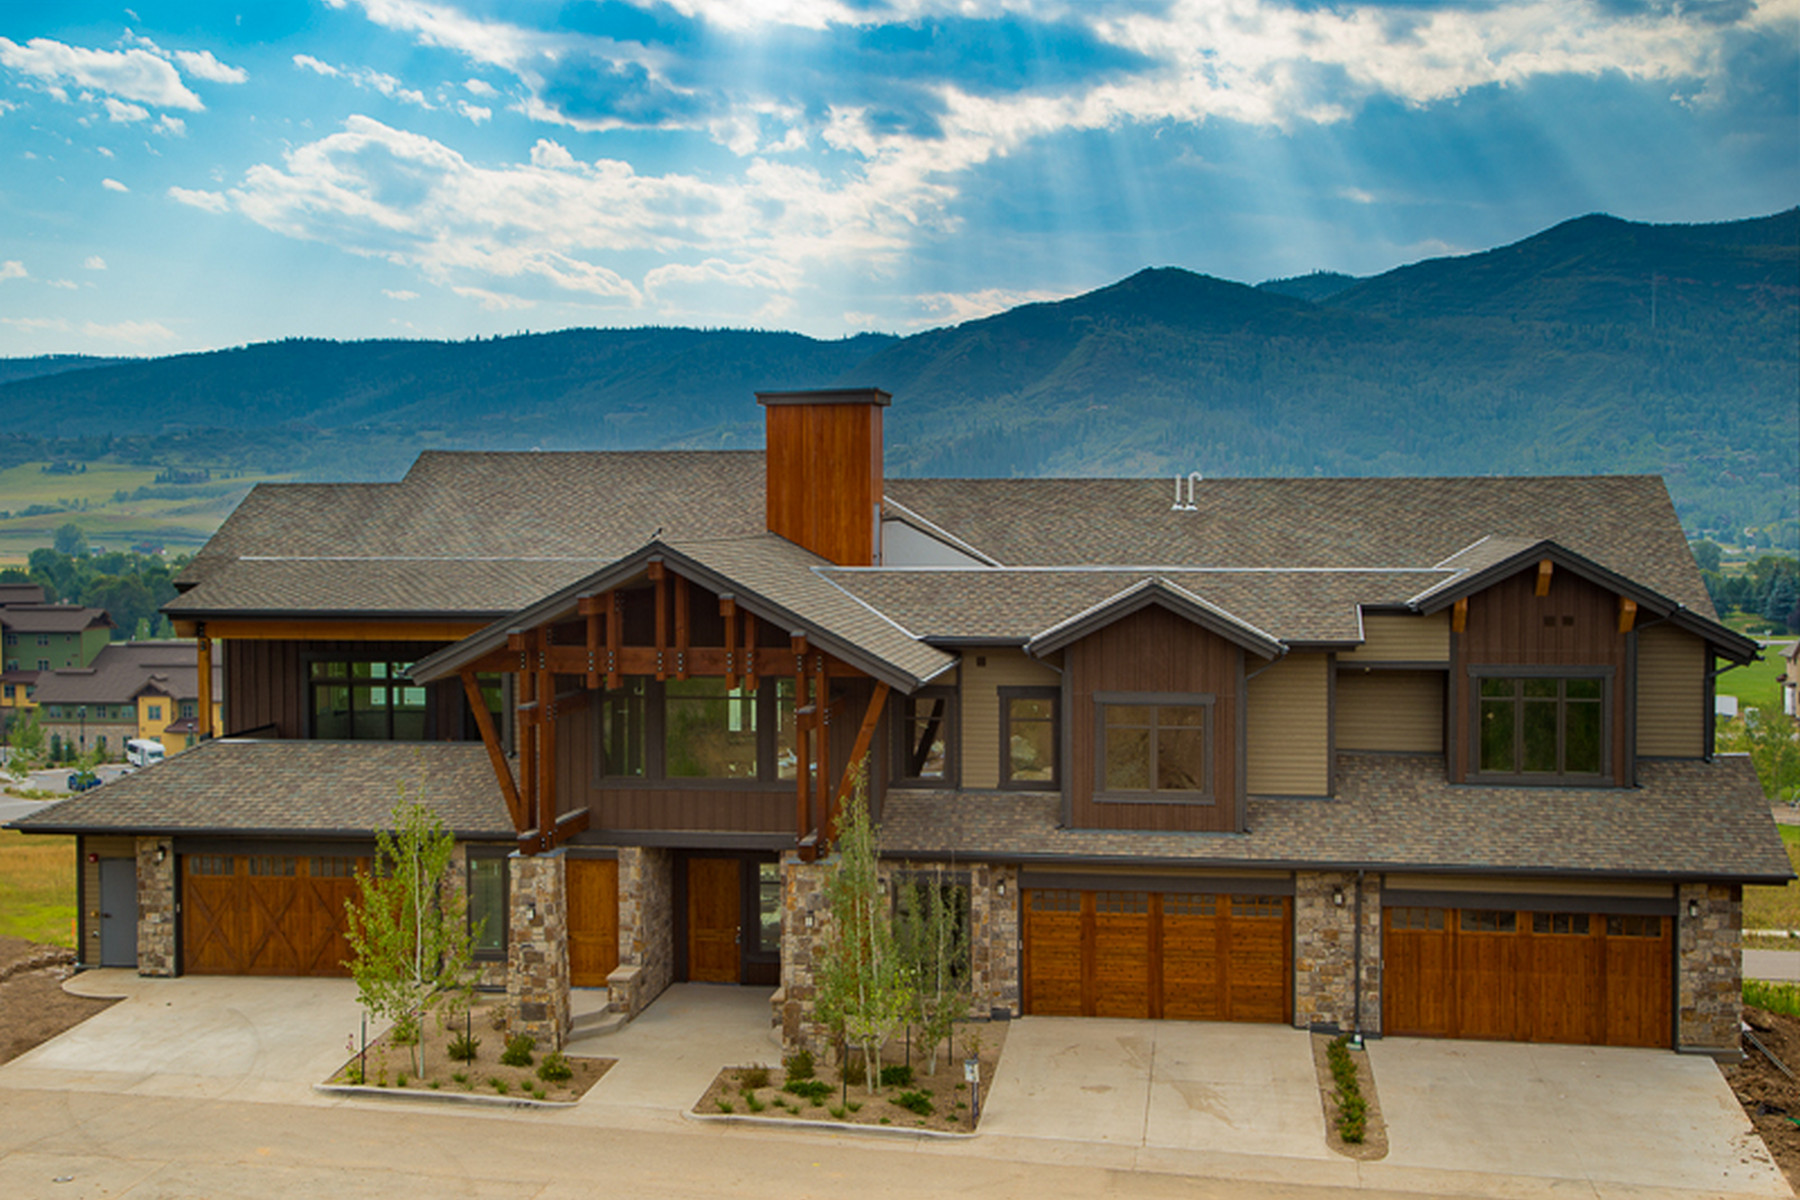 Condominium for Sale at Chadwick Flats 1275 Eagle Glen Dr. Unit 200 Steamboat Springs, Colorado, 80487 United States